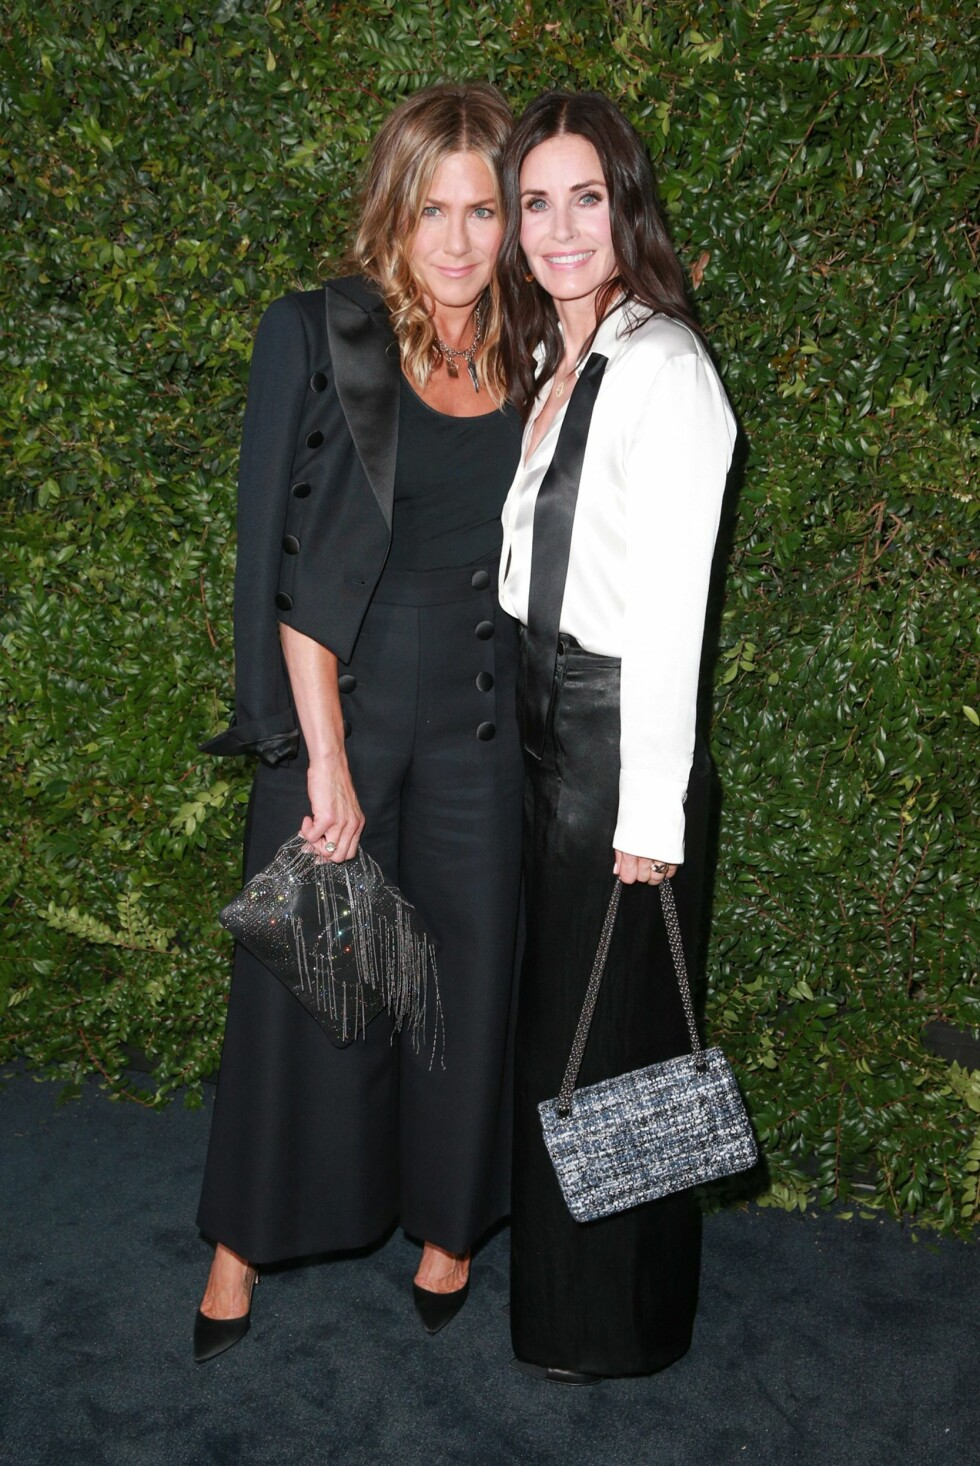 Jennifer Aniston sammen med sin kollega fra Friends, Courteney Cox på Our Majestic Oceans Benefit Dinner invitert av Chanel i 2018. Foto: NTB Scanpix